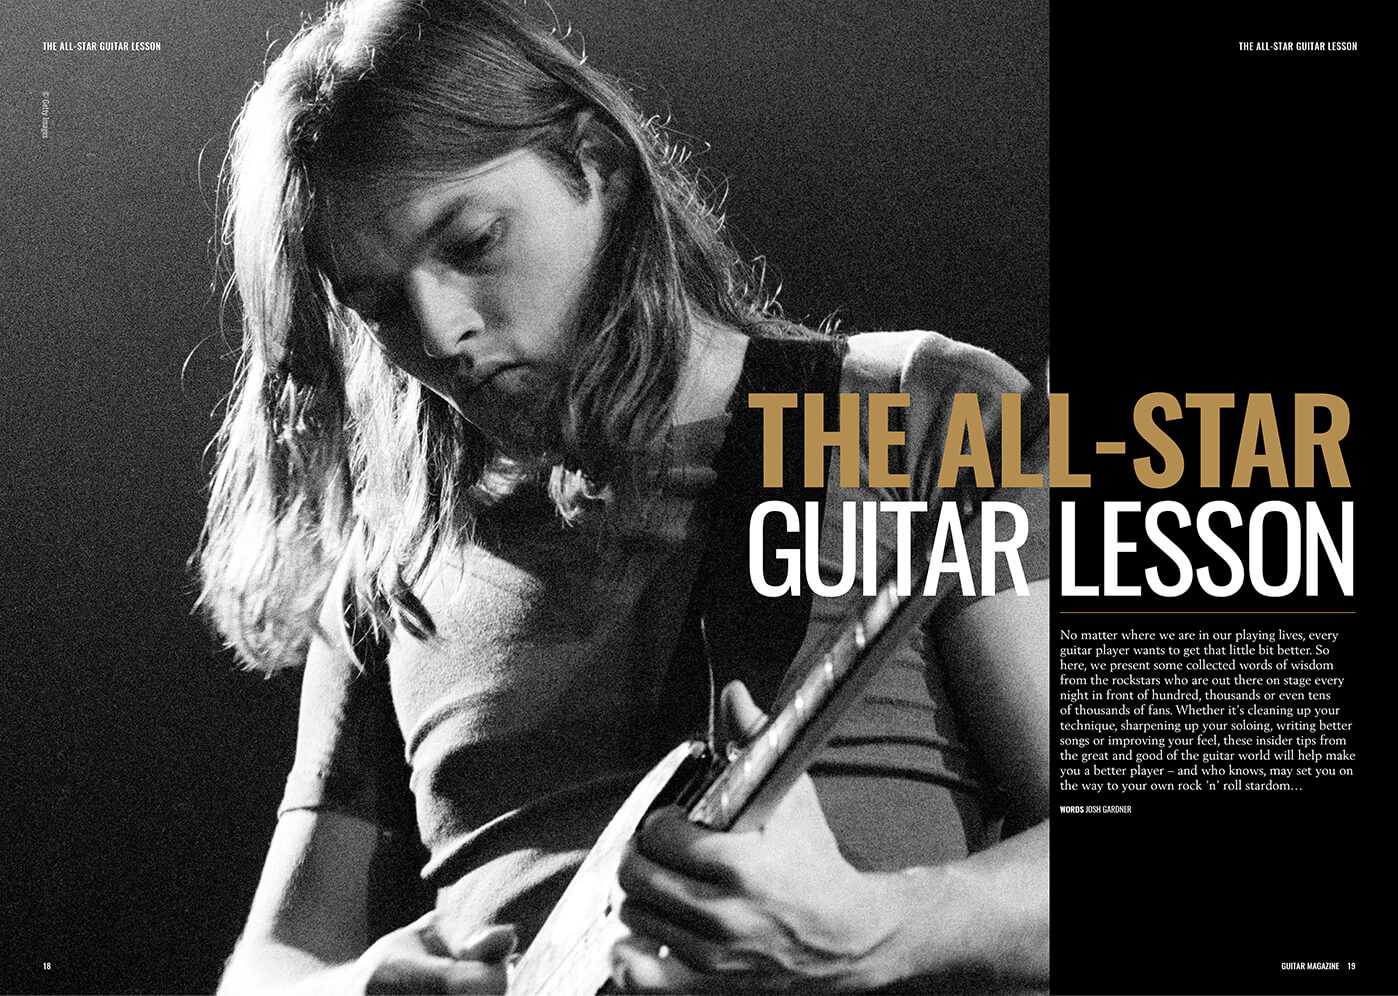 david gilmour guitar lesson